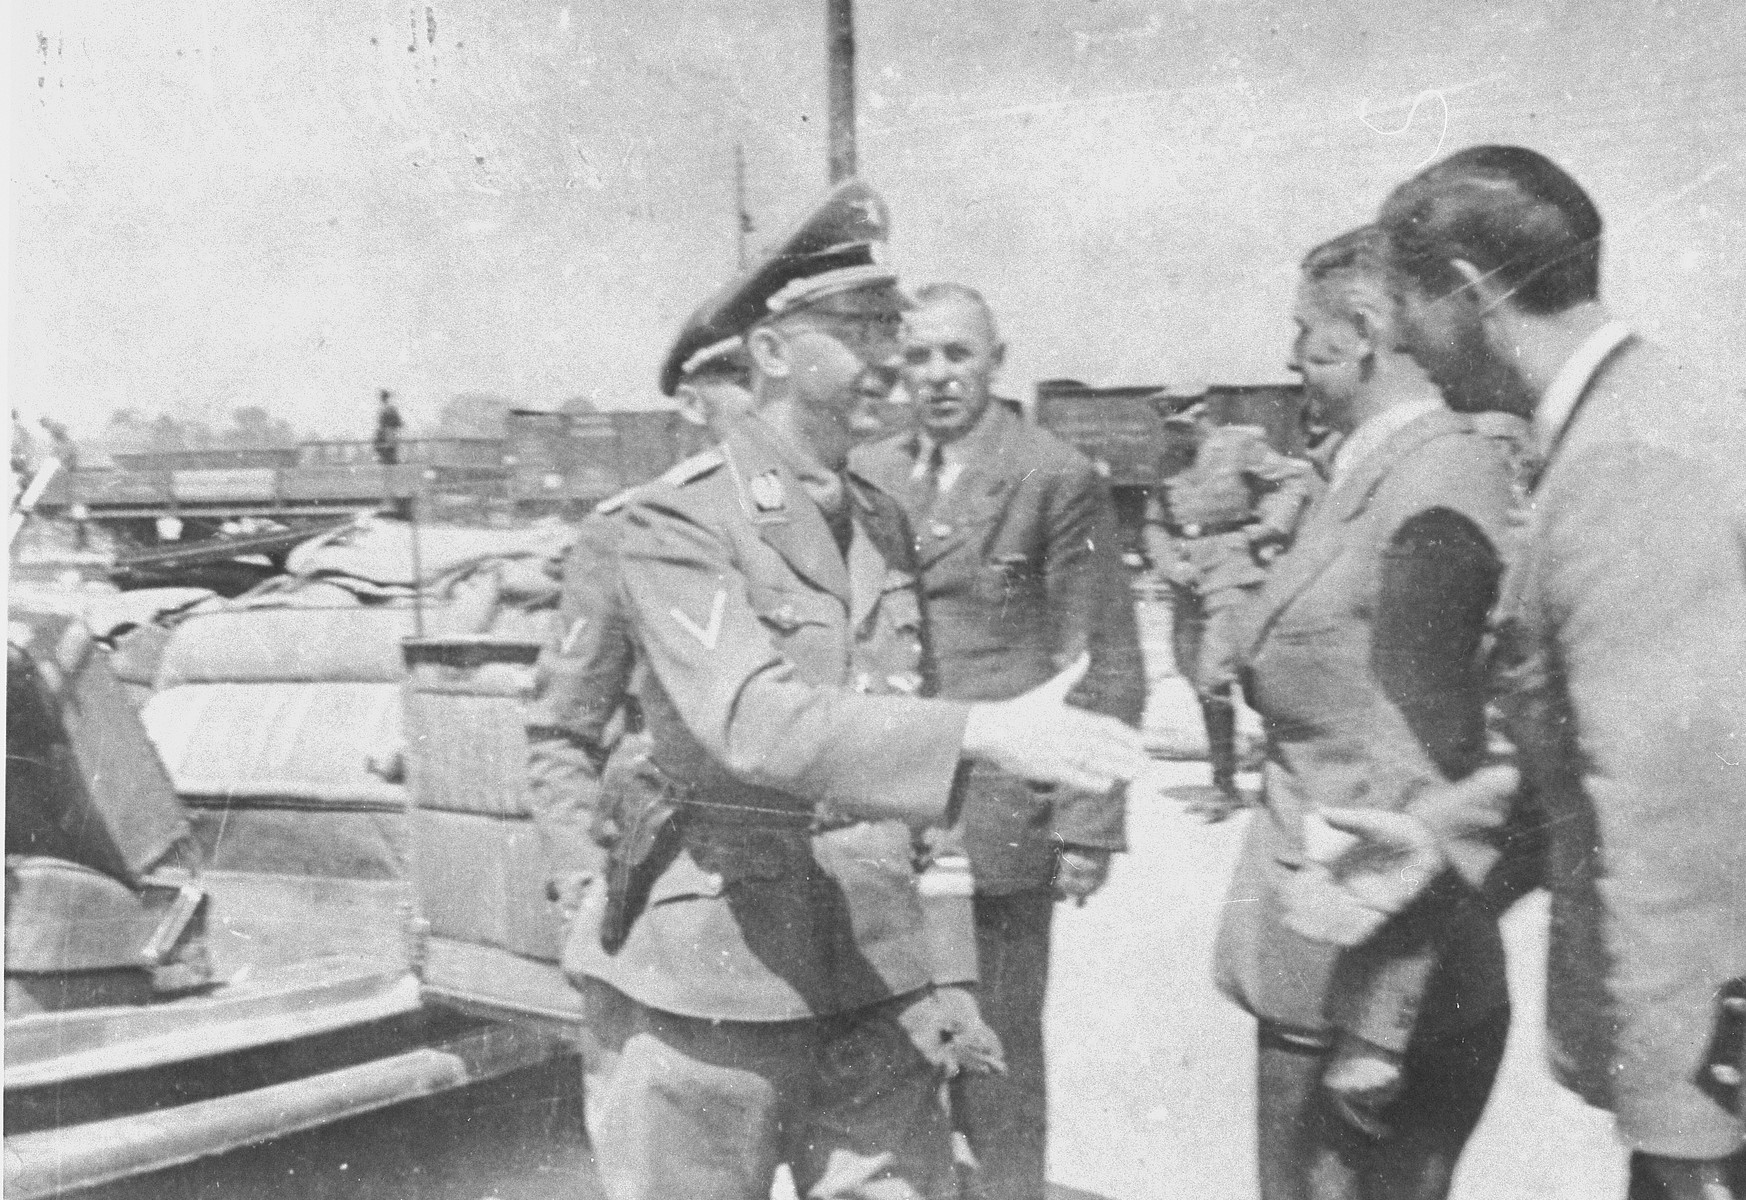 During a tour of the Monowitz-Buna building site, Reichsfuehrer SS Heinrich Himmler extends his hand in greeting to the engineers supervising the construction.